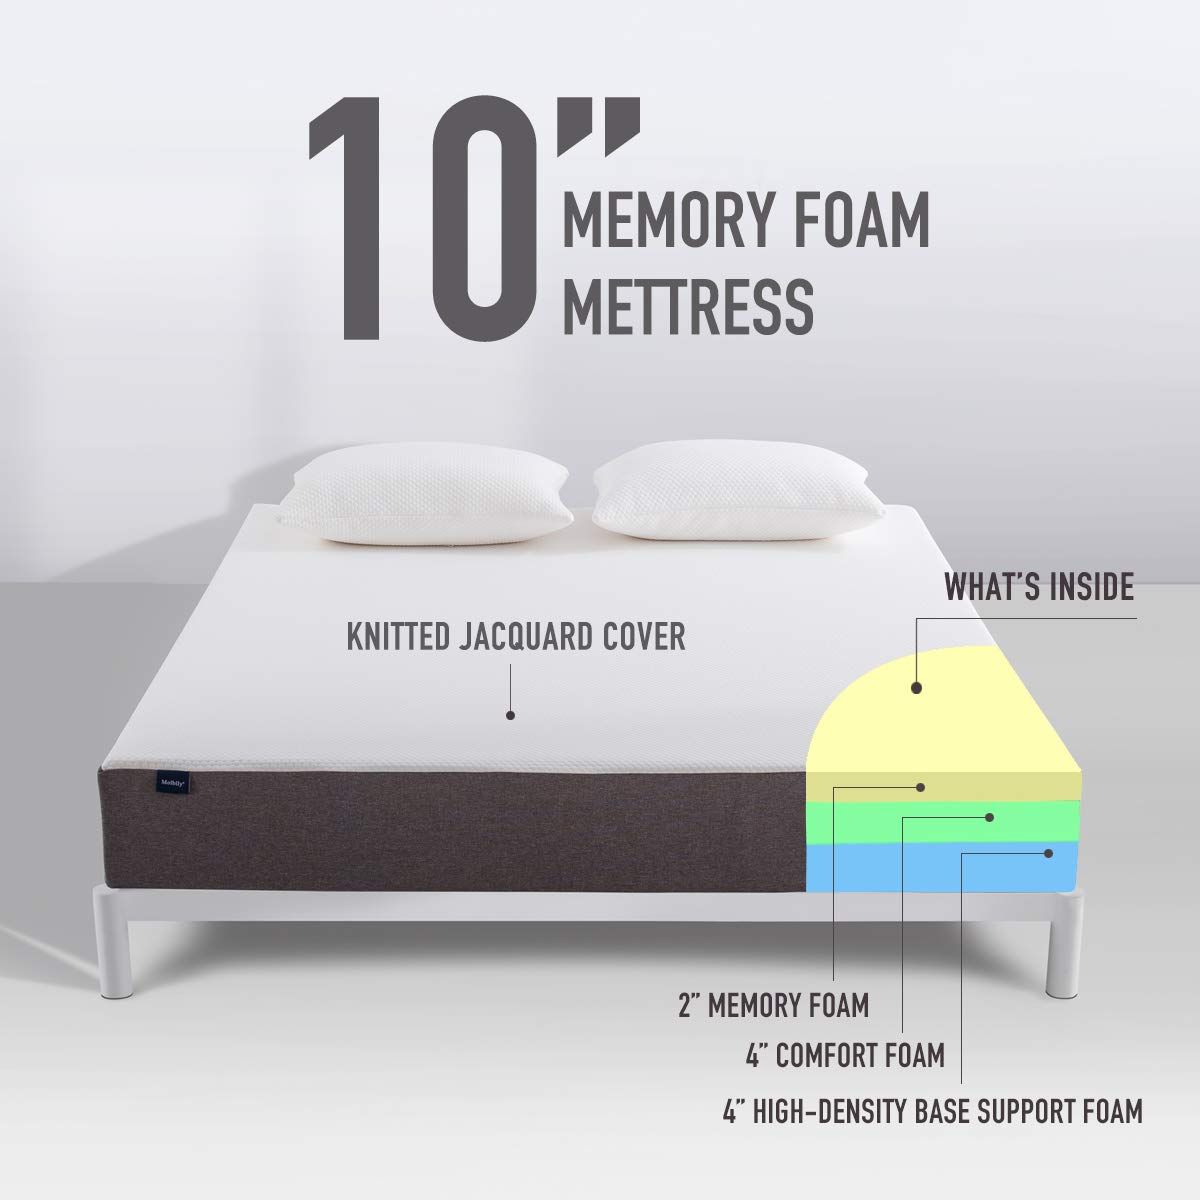 Queen Mattress, Molblly 10 Inch Memory Foam Mattress in a Box, Breathable Bed Mattress with CertiPUR-US Certified Foam for Sleep Supportive & Pressure Relief, 10-Year Warranty, Queen Size by Molblly (Image #4)